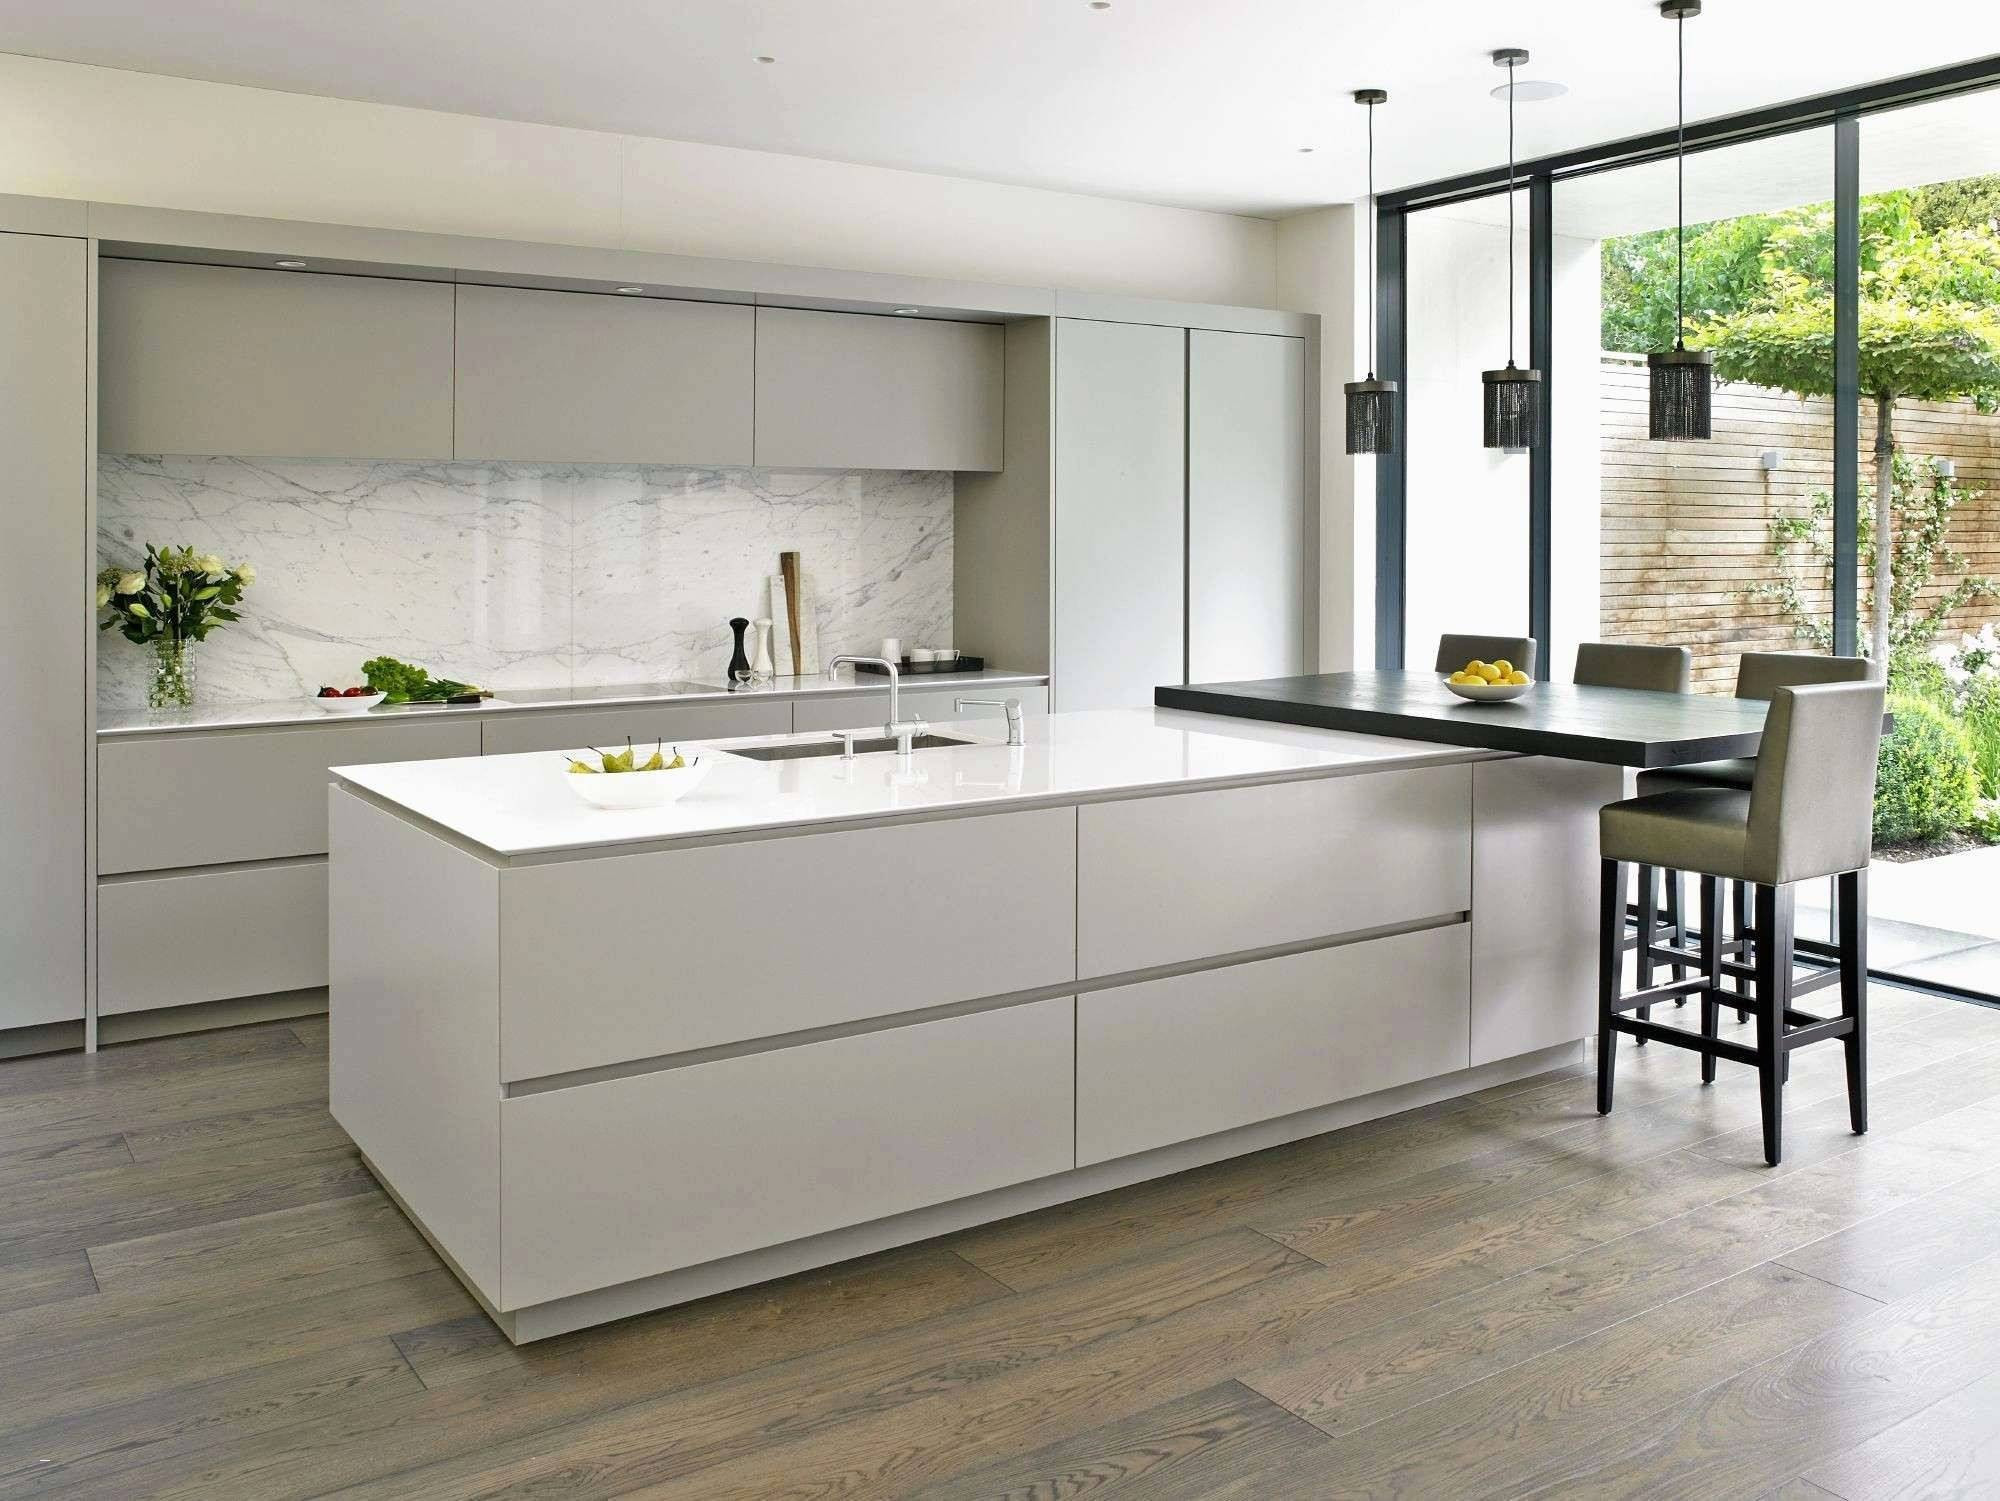 how much does hardwood flooring cost of white laminate flooring unique cost for new kitchen cabinets new 0d throughout related post